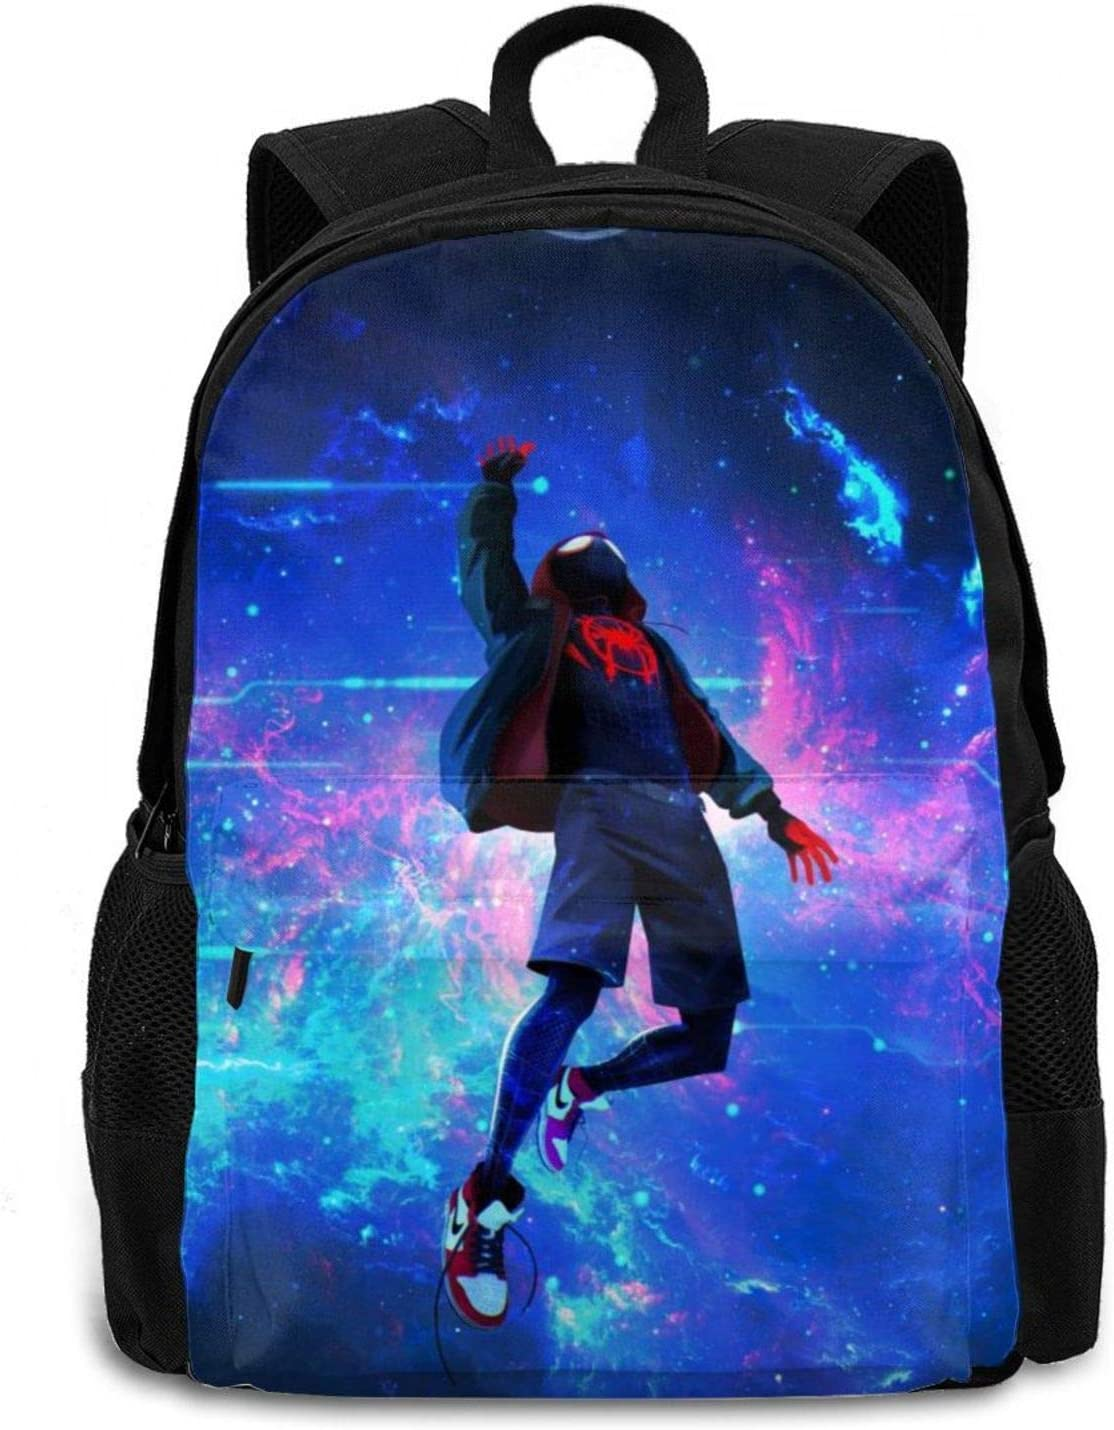 Backpack Travel School Laptop Backpack For Boys Girls College Students Suitable Teenagers, Adults